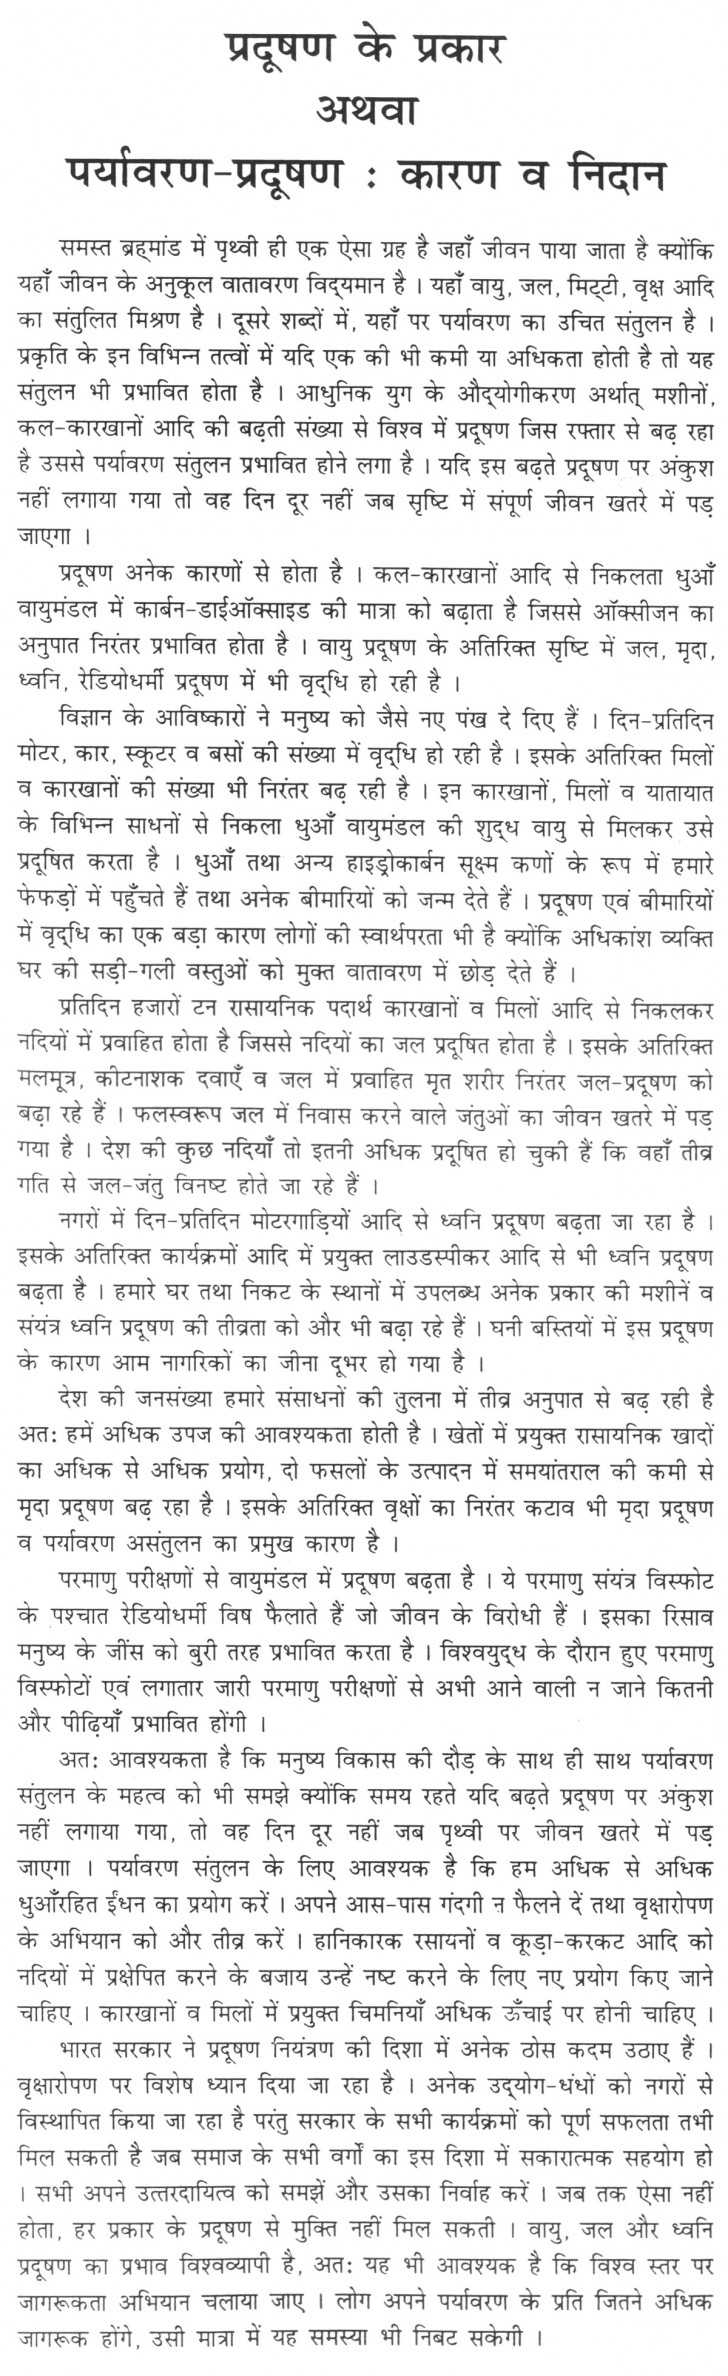 014 Good Habits Essay In Hindi Exceptional And Bad Healthy Eating 728